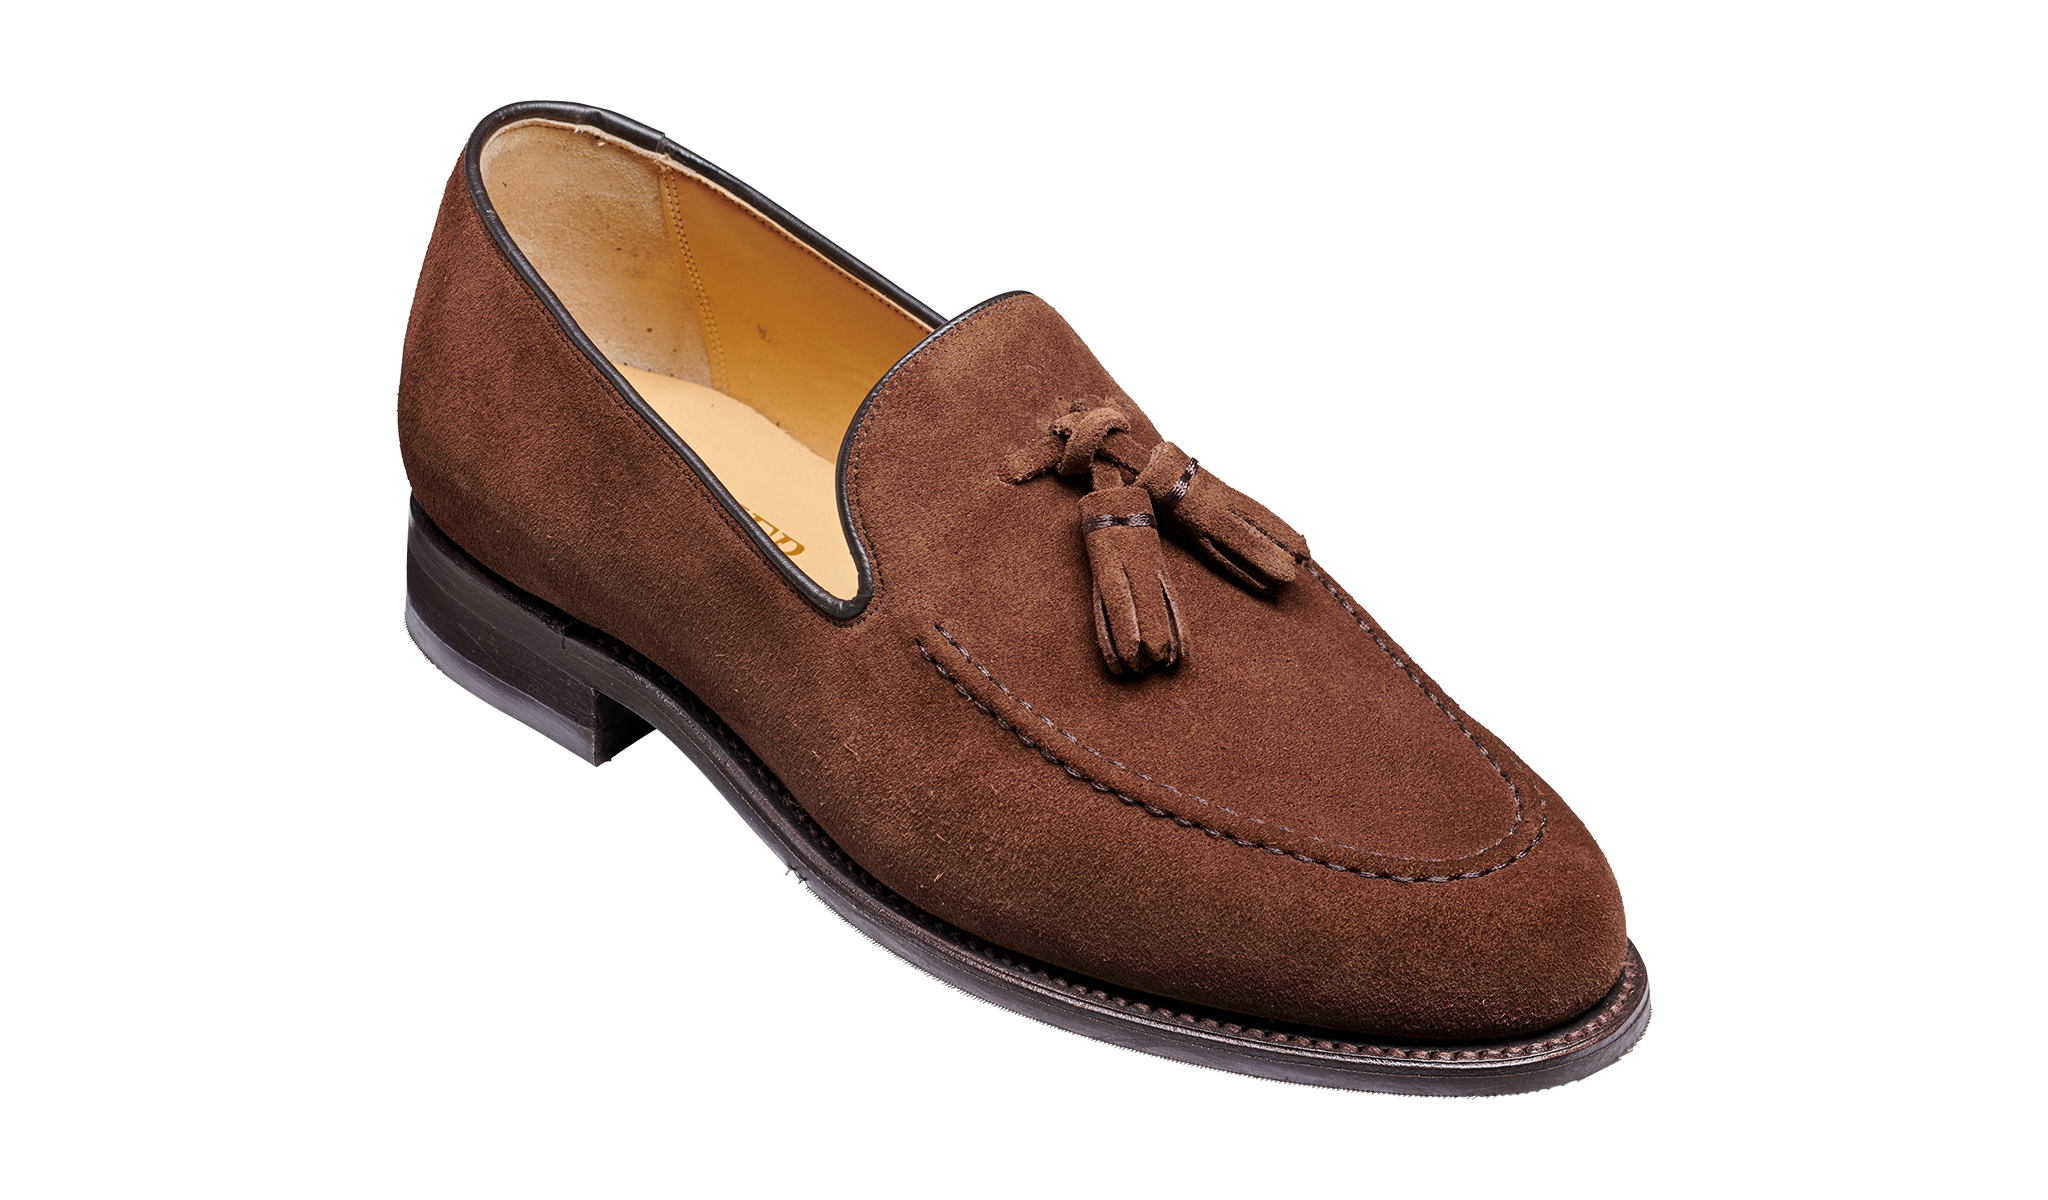 Studland - A men's loafer by Barker Shoes.